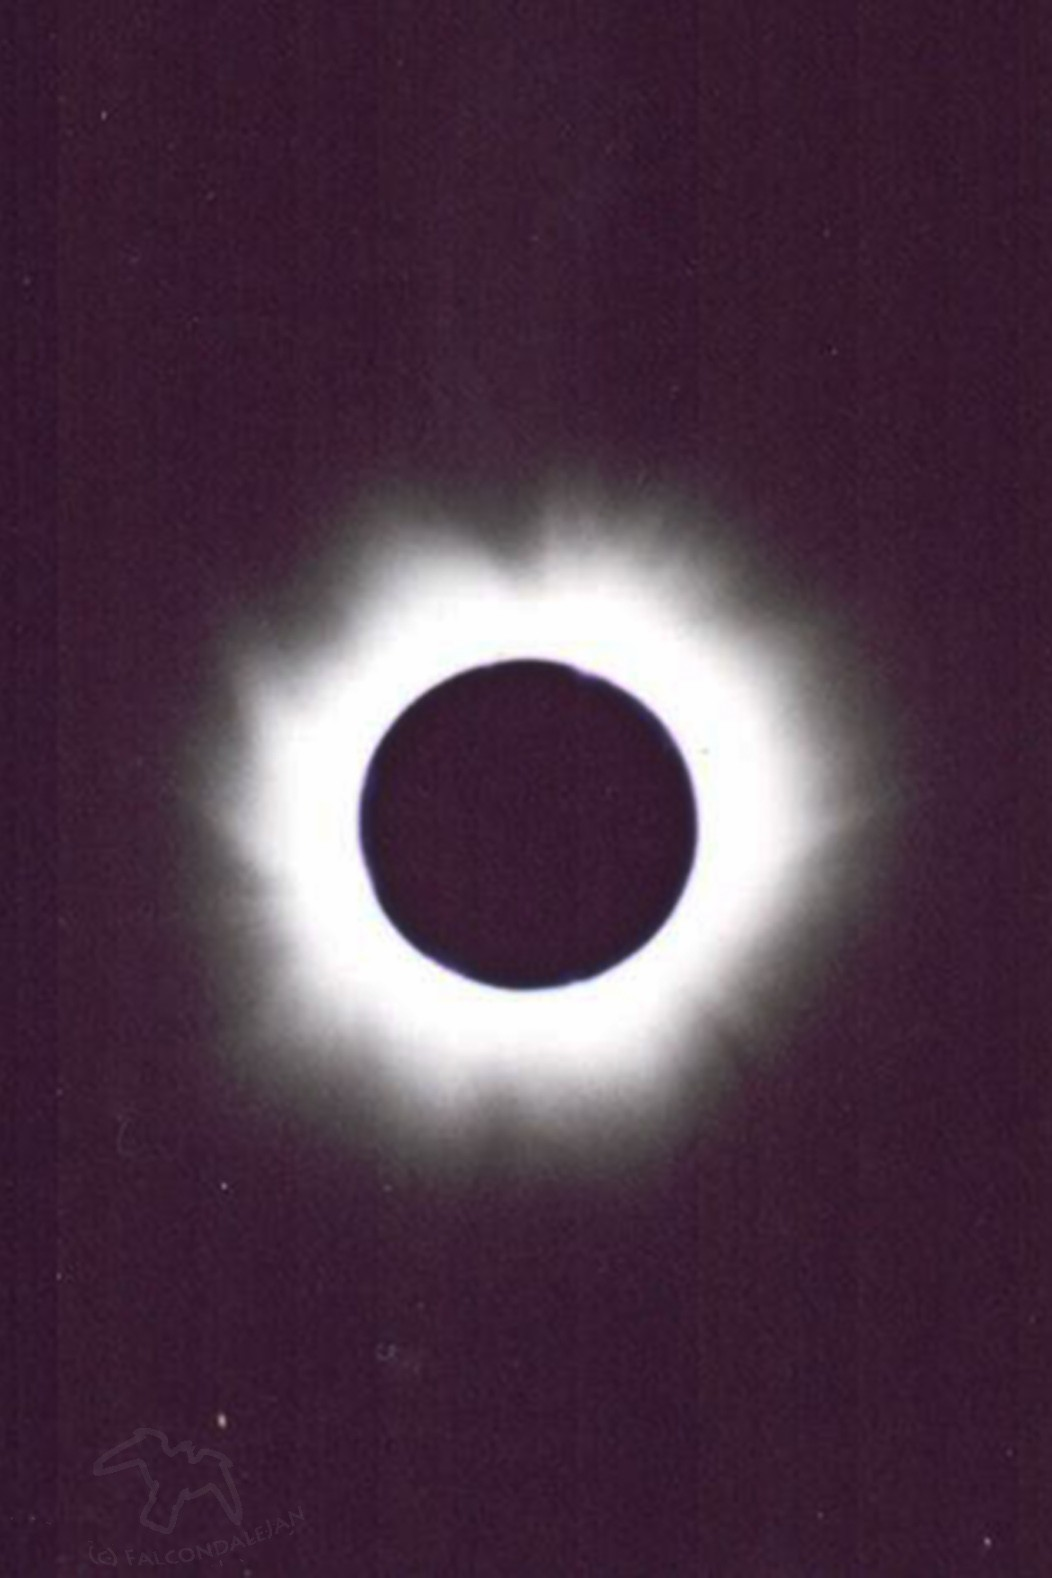 Views of a Total Eclipse from France, A Travelogue on Falcondale Life blog. Watching and photographing a total solar eclipse in France 1999. The practical and emotional experience of seeing totality on a holiday with friends.